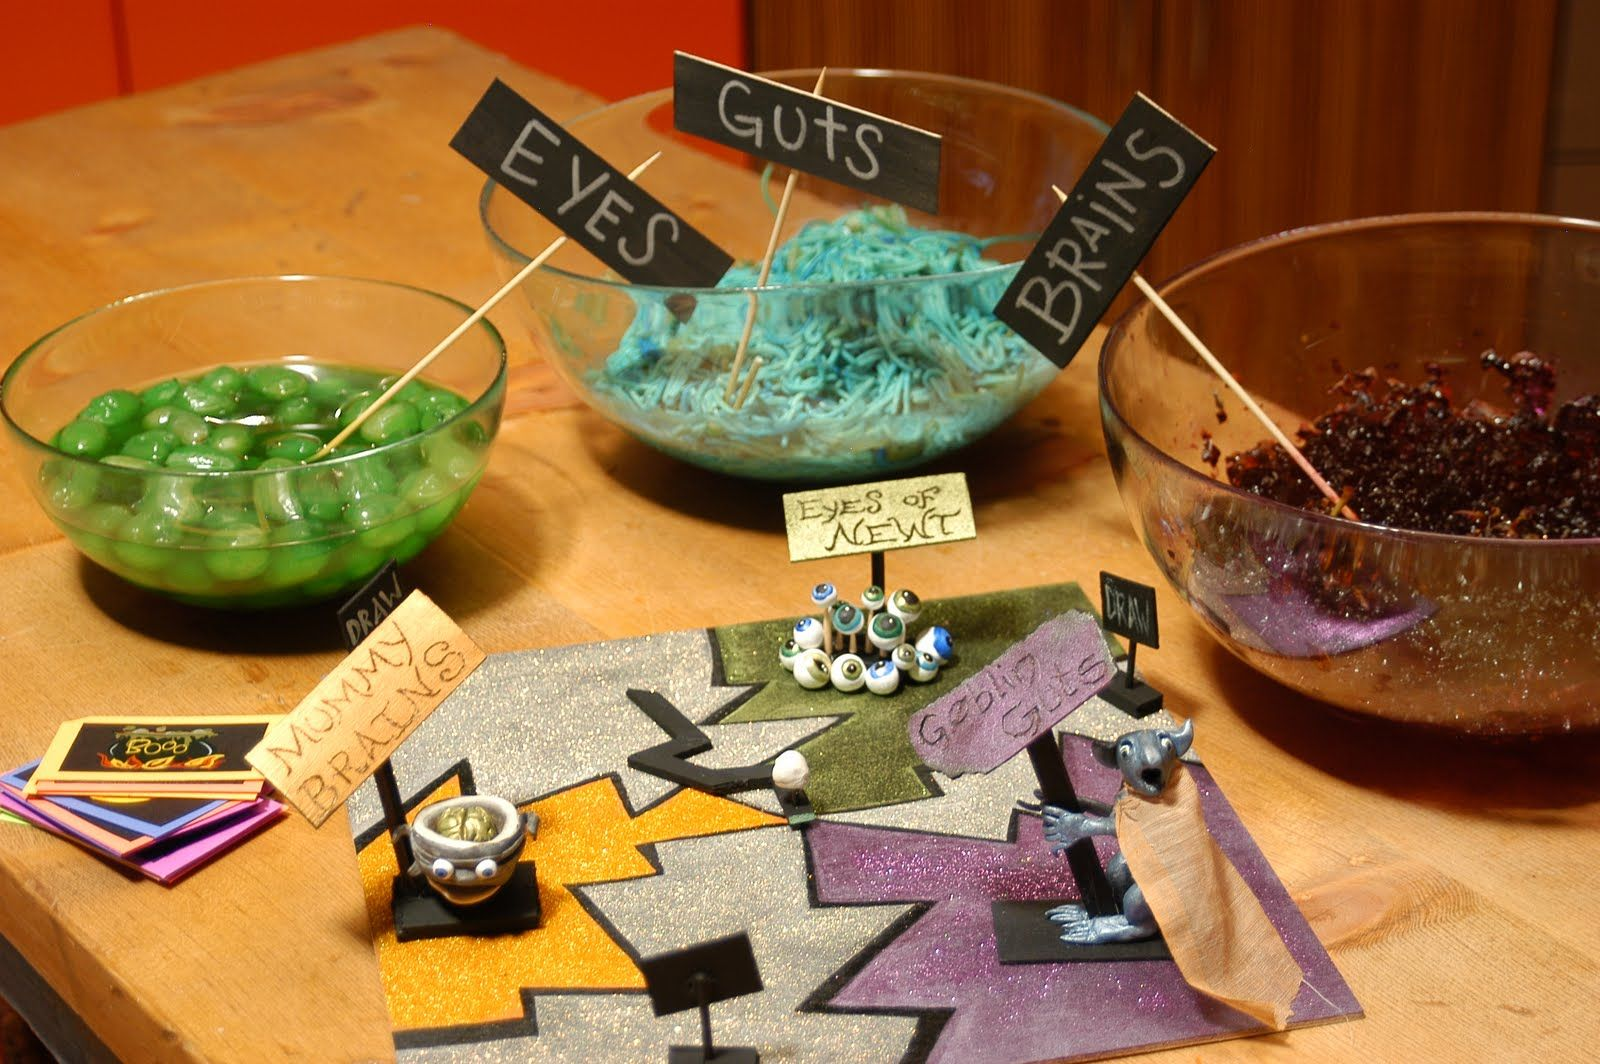 Diy Kids Halloween Games Guts And Goop With Jello And Dyed